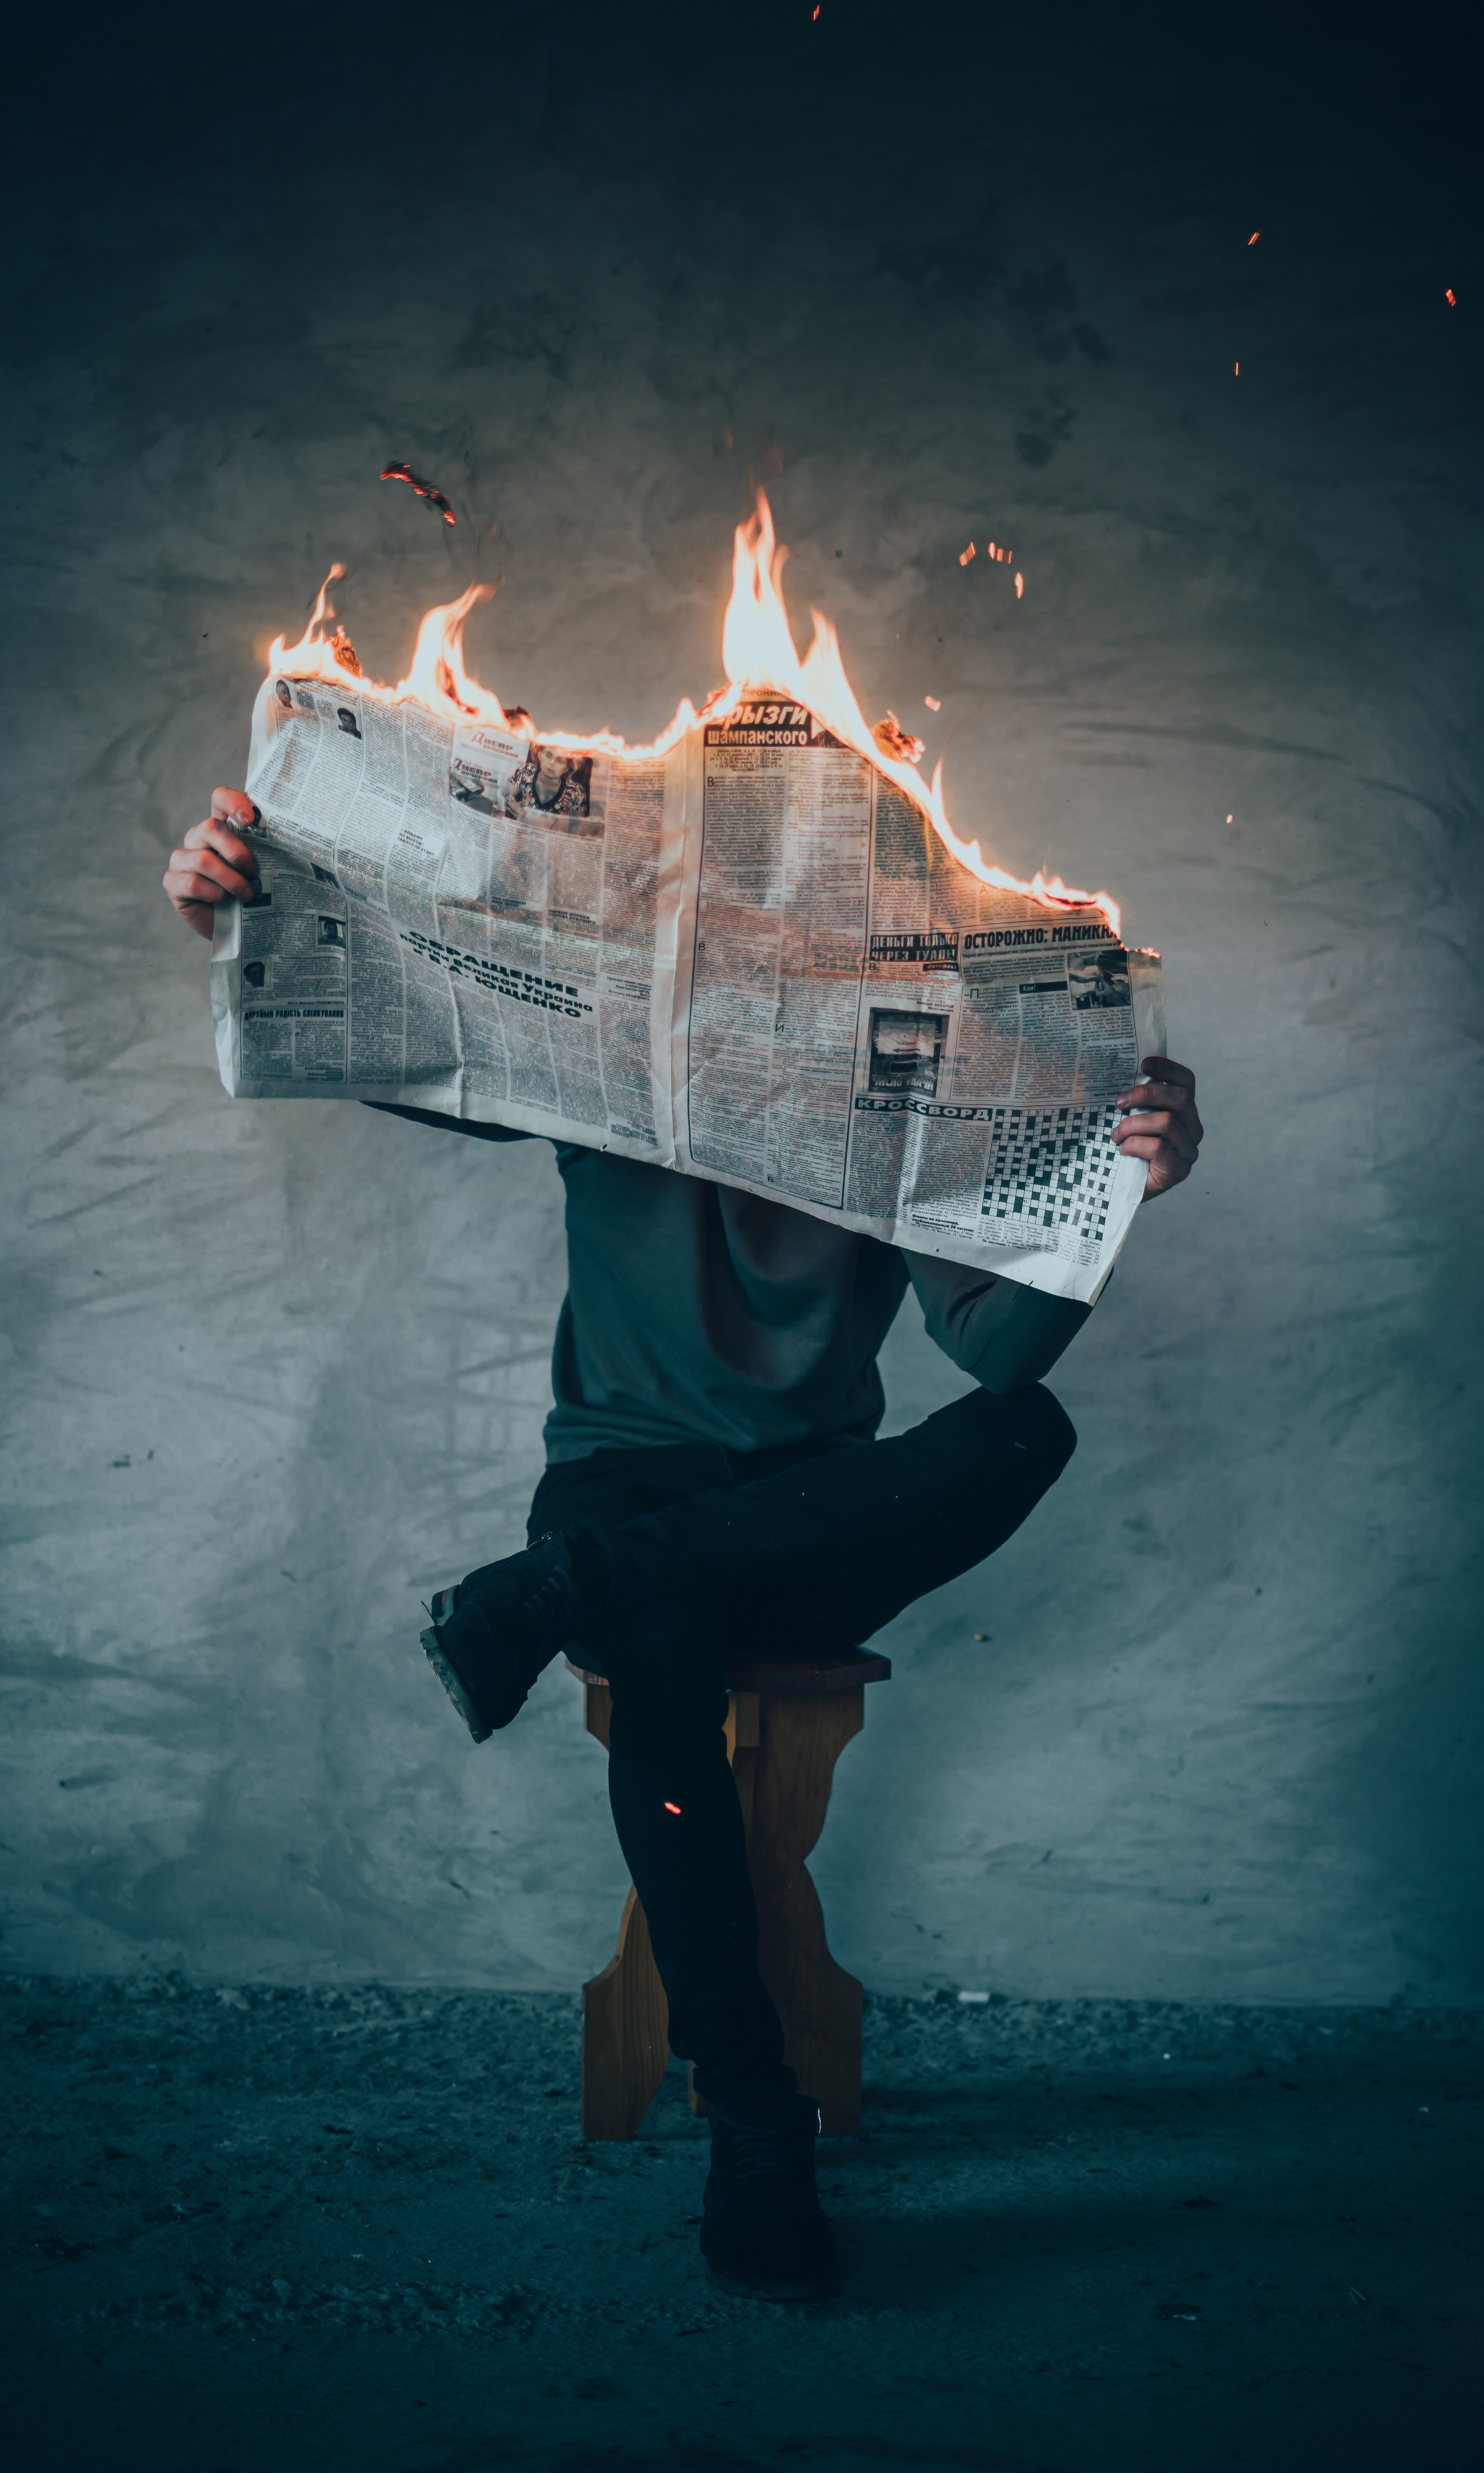 HR in Crisis: Learning from the Headlines